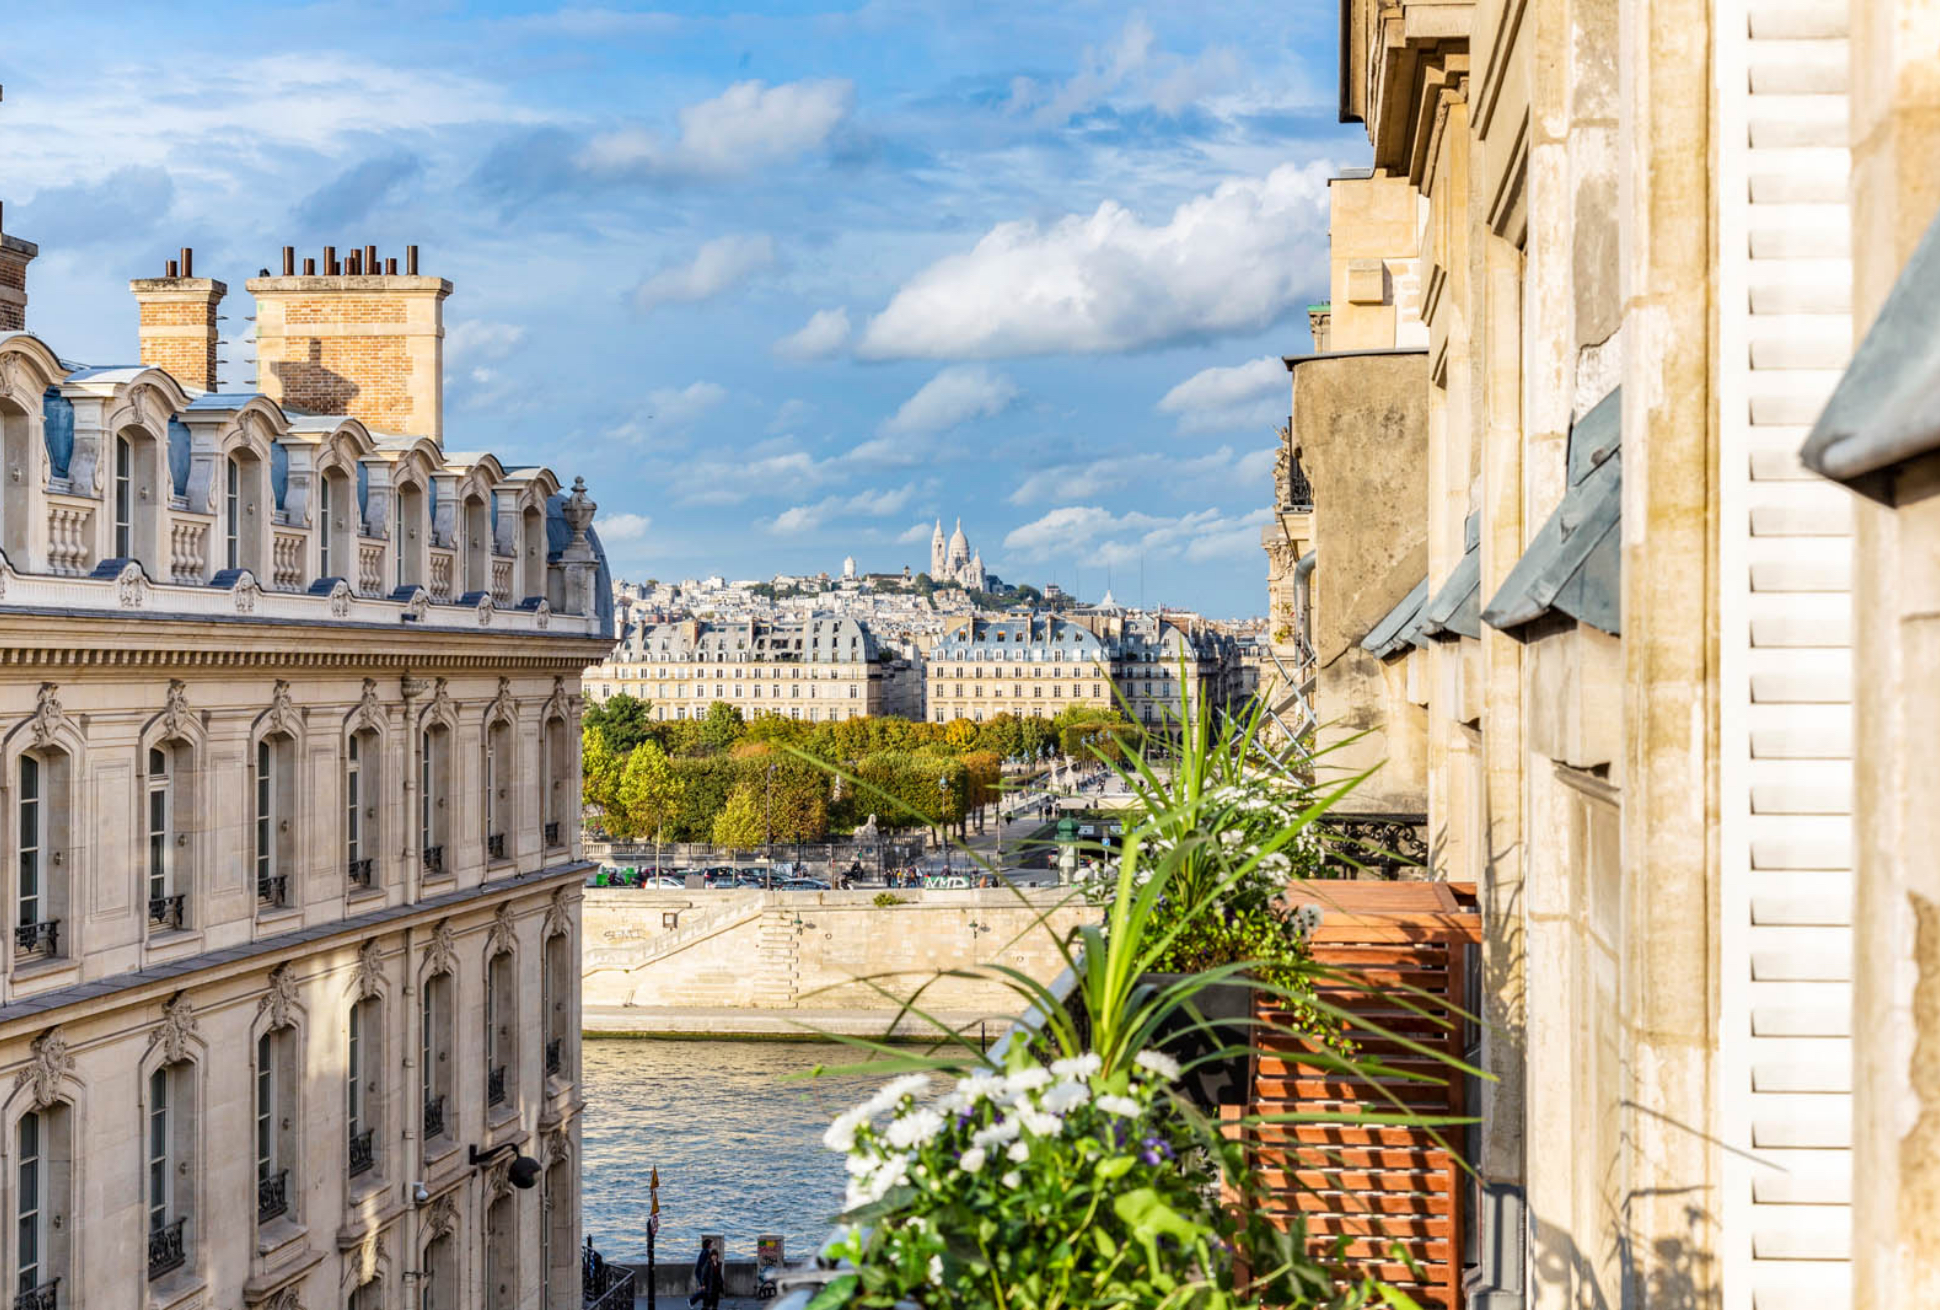 Kasha Paris Real Estate Apartment for sale Rive Gauche Saint-Germain-des-Prés 75007 Paris